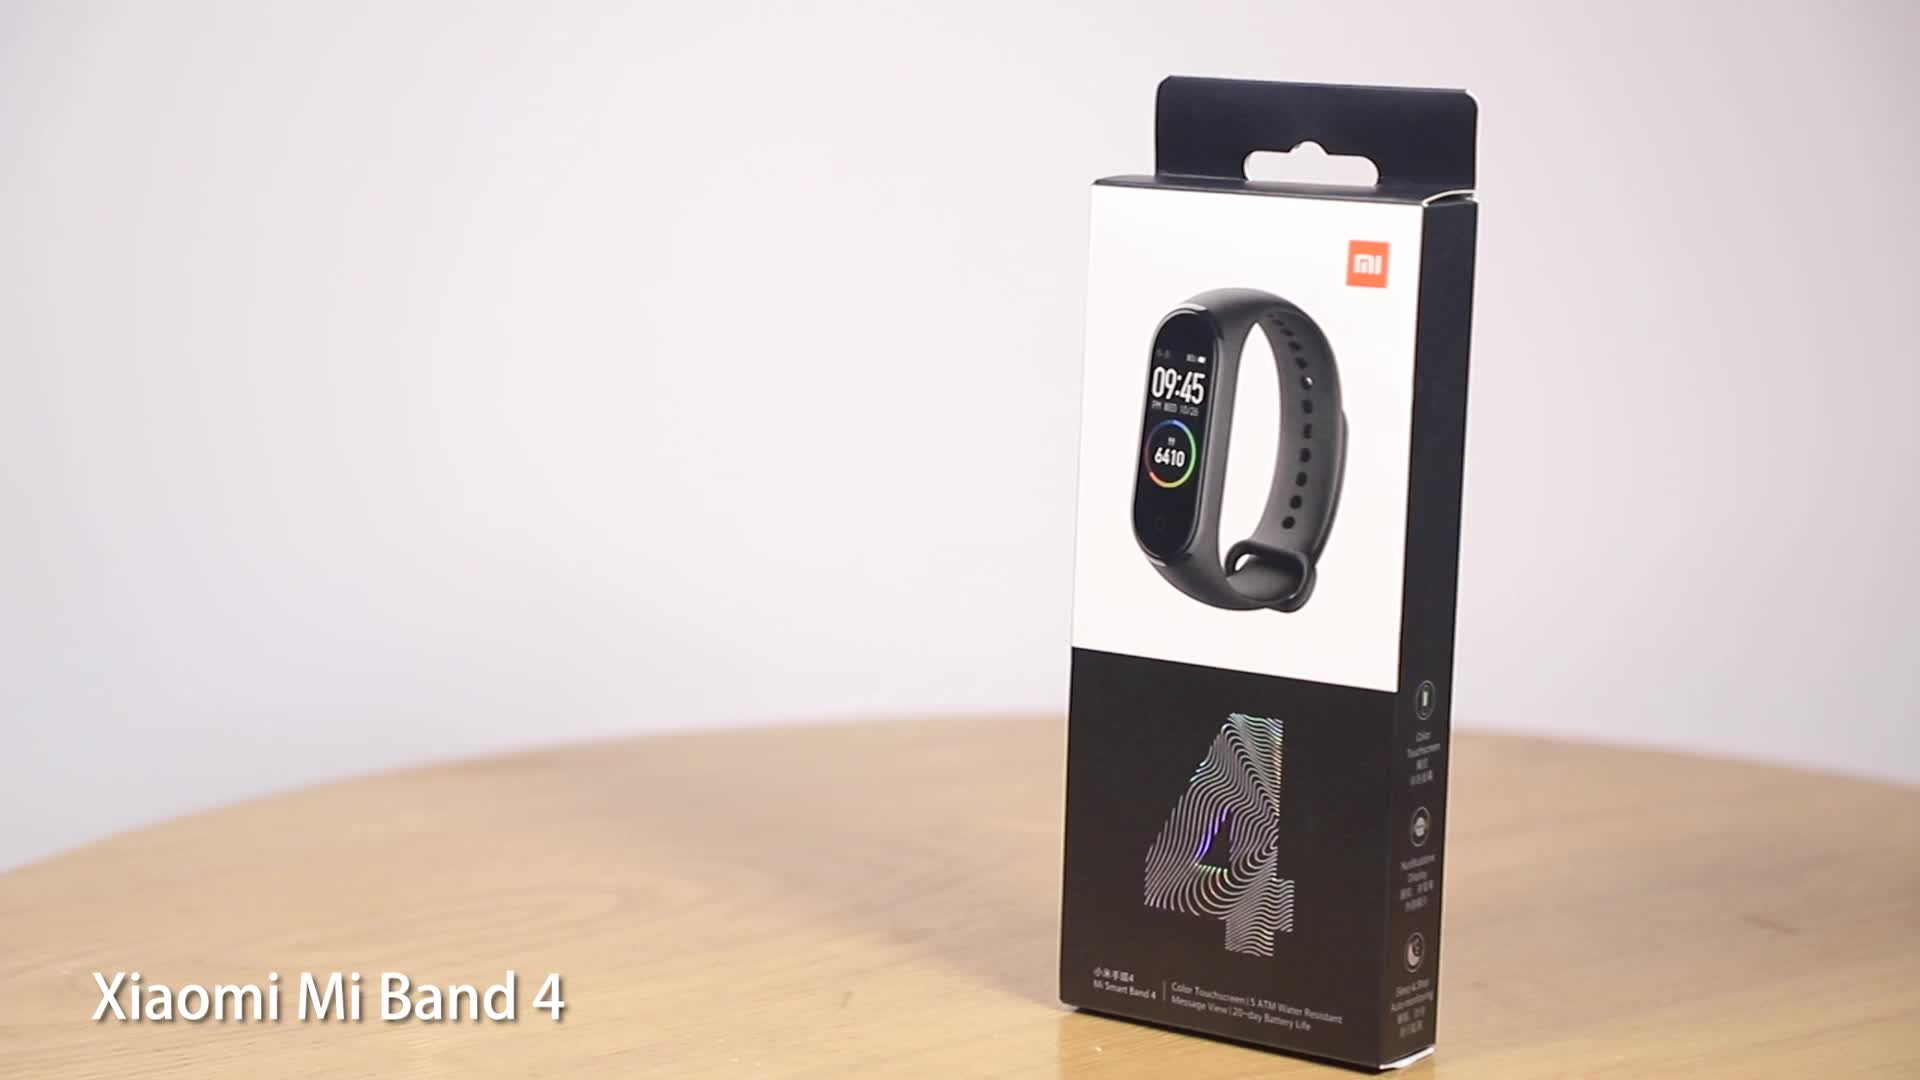 Original Xiaomi Mi Band 4 Smart band4 Bracelet Heart Rate Fitness 135 mAh Color Screen BT 5.0 AI Heart Rate Mi Band 4 Xiaomi